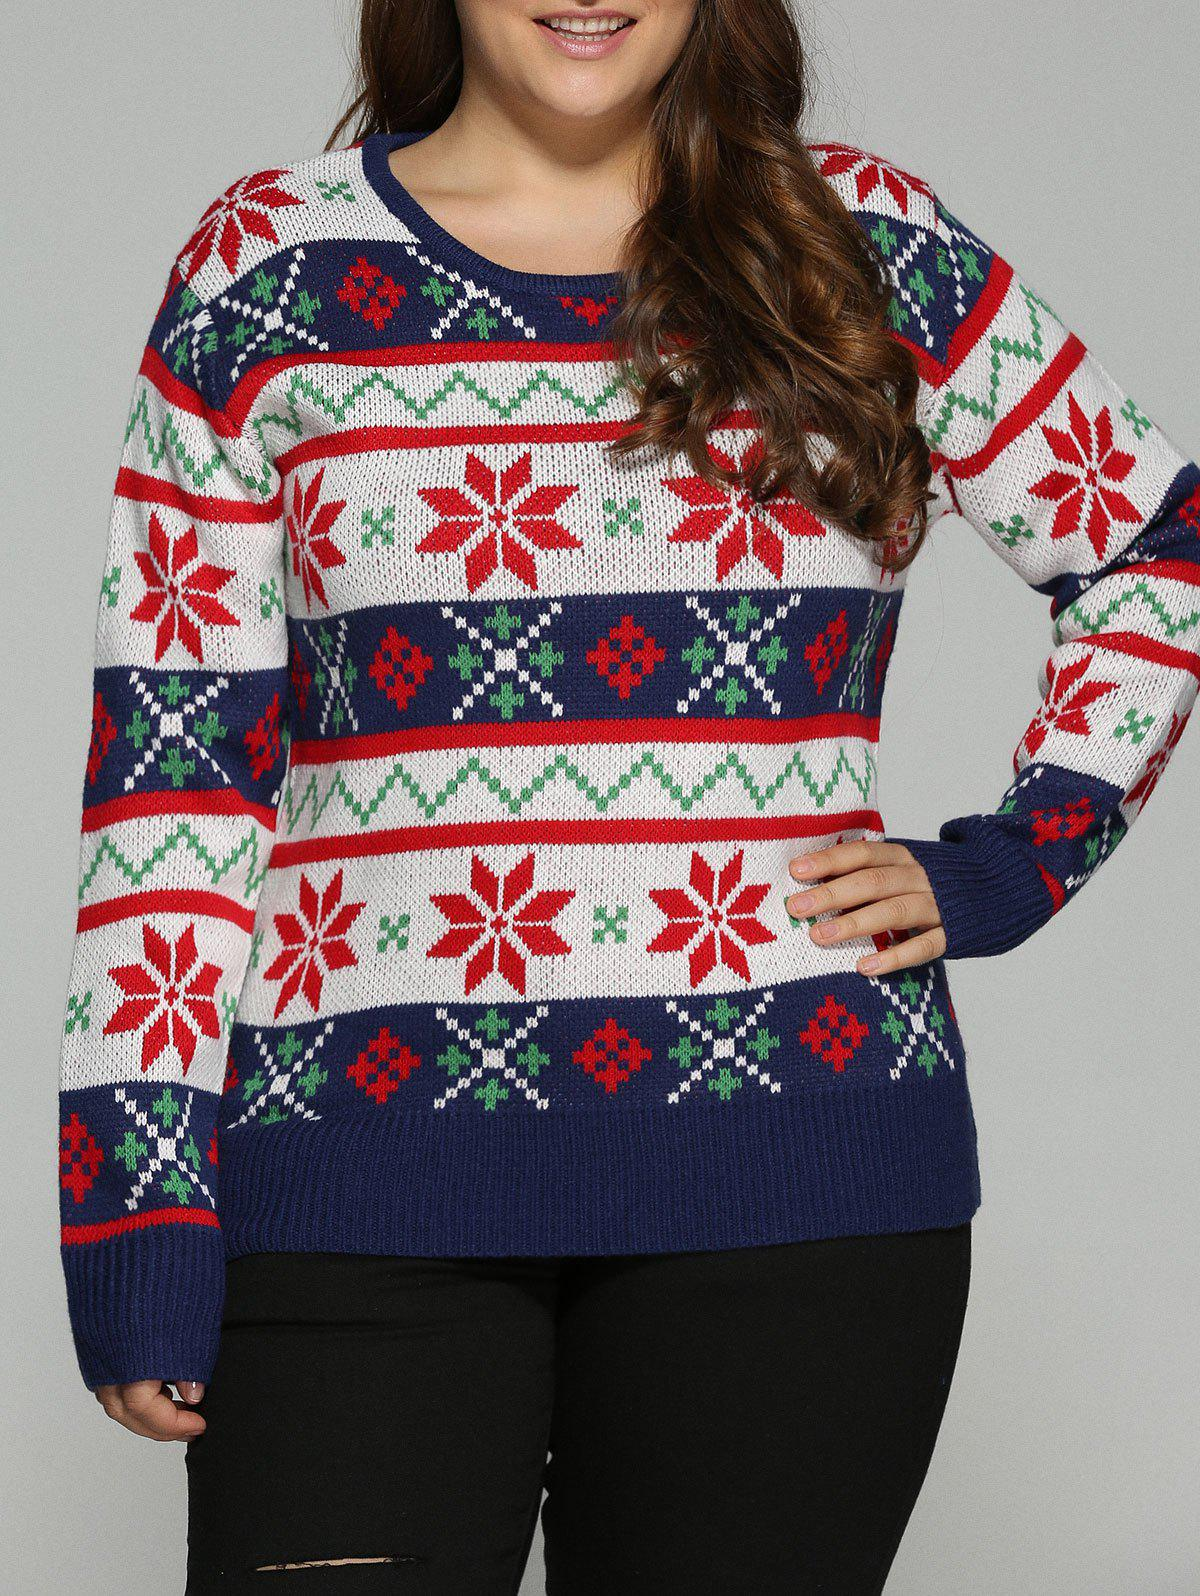 Plus Size Christmas Jacquard Pullover Knit Sweater bear patched plus size pullover sweater